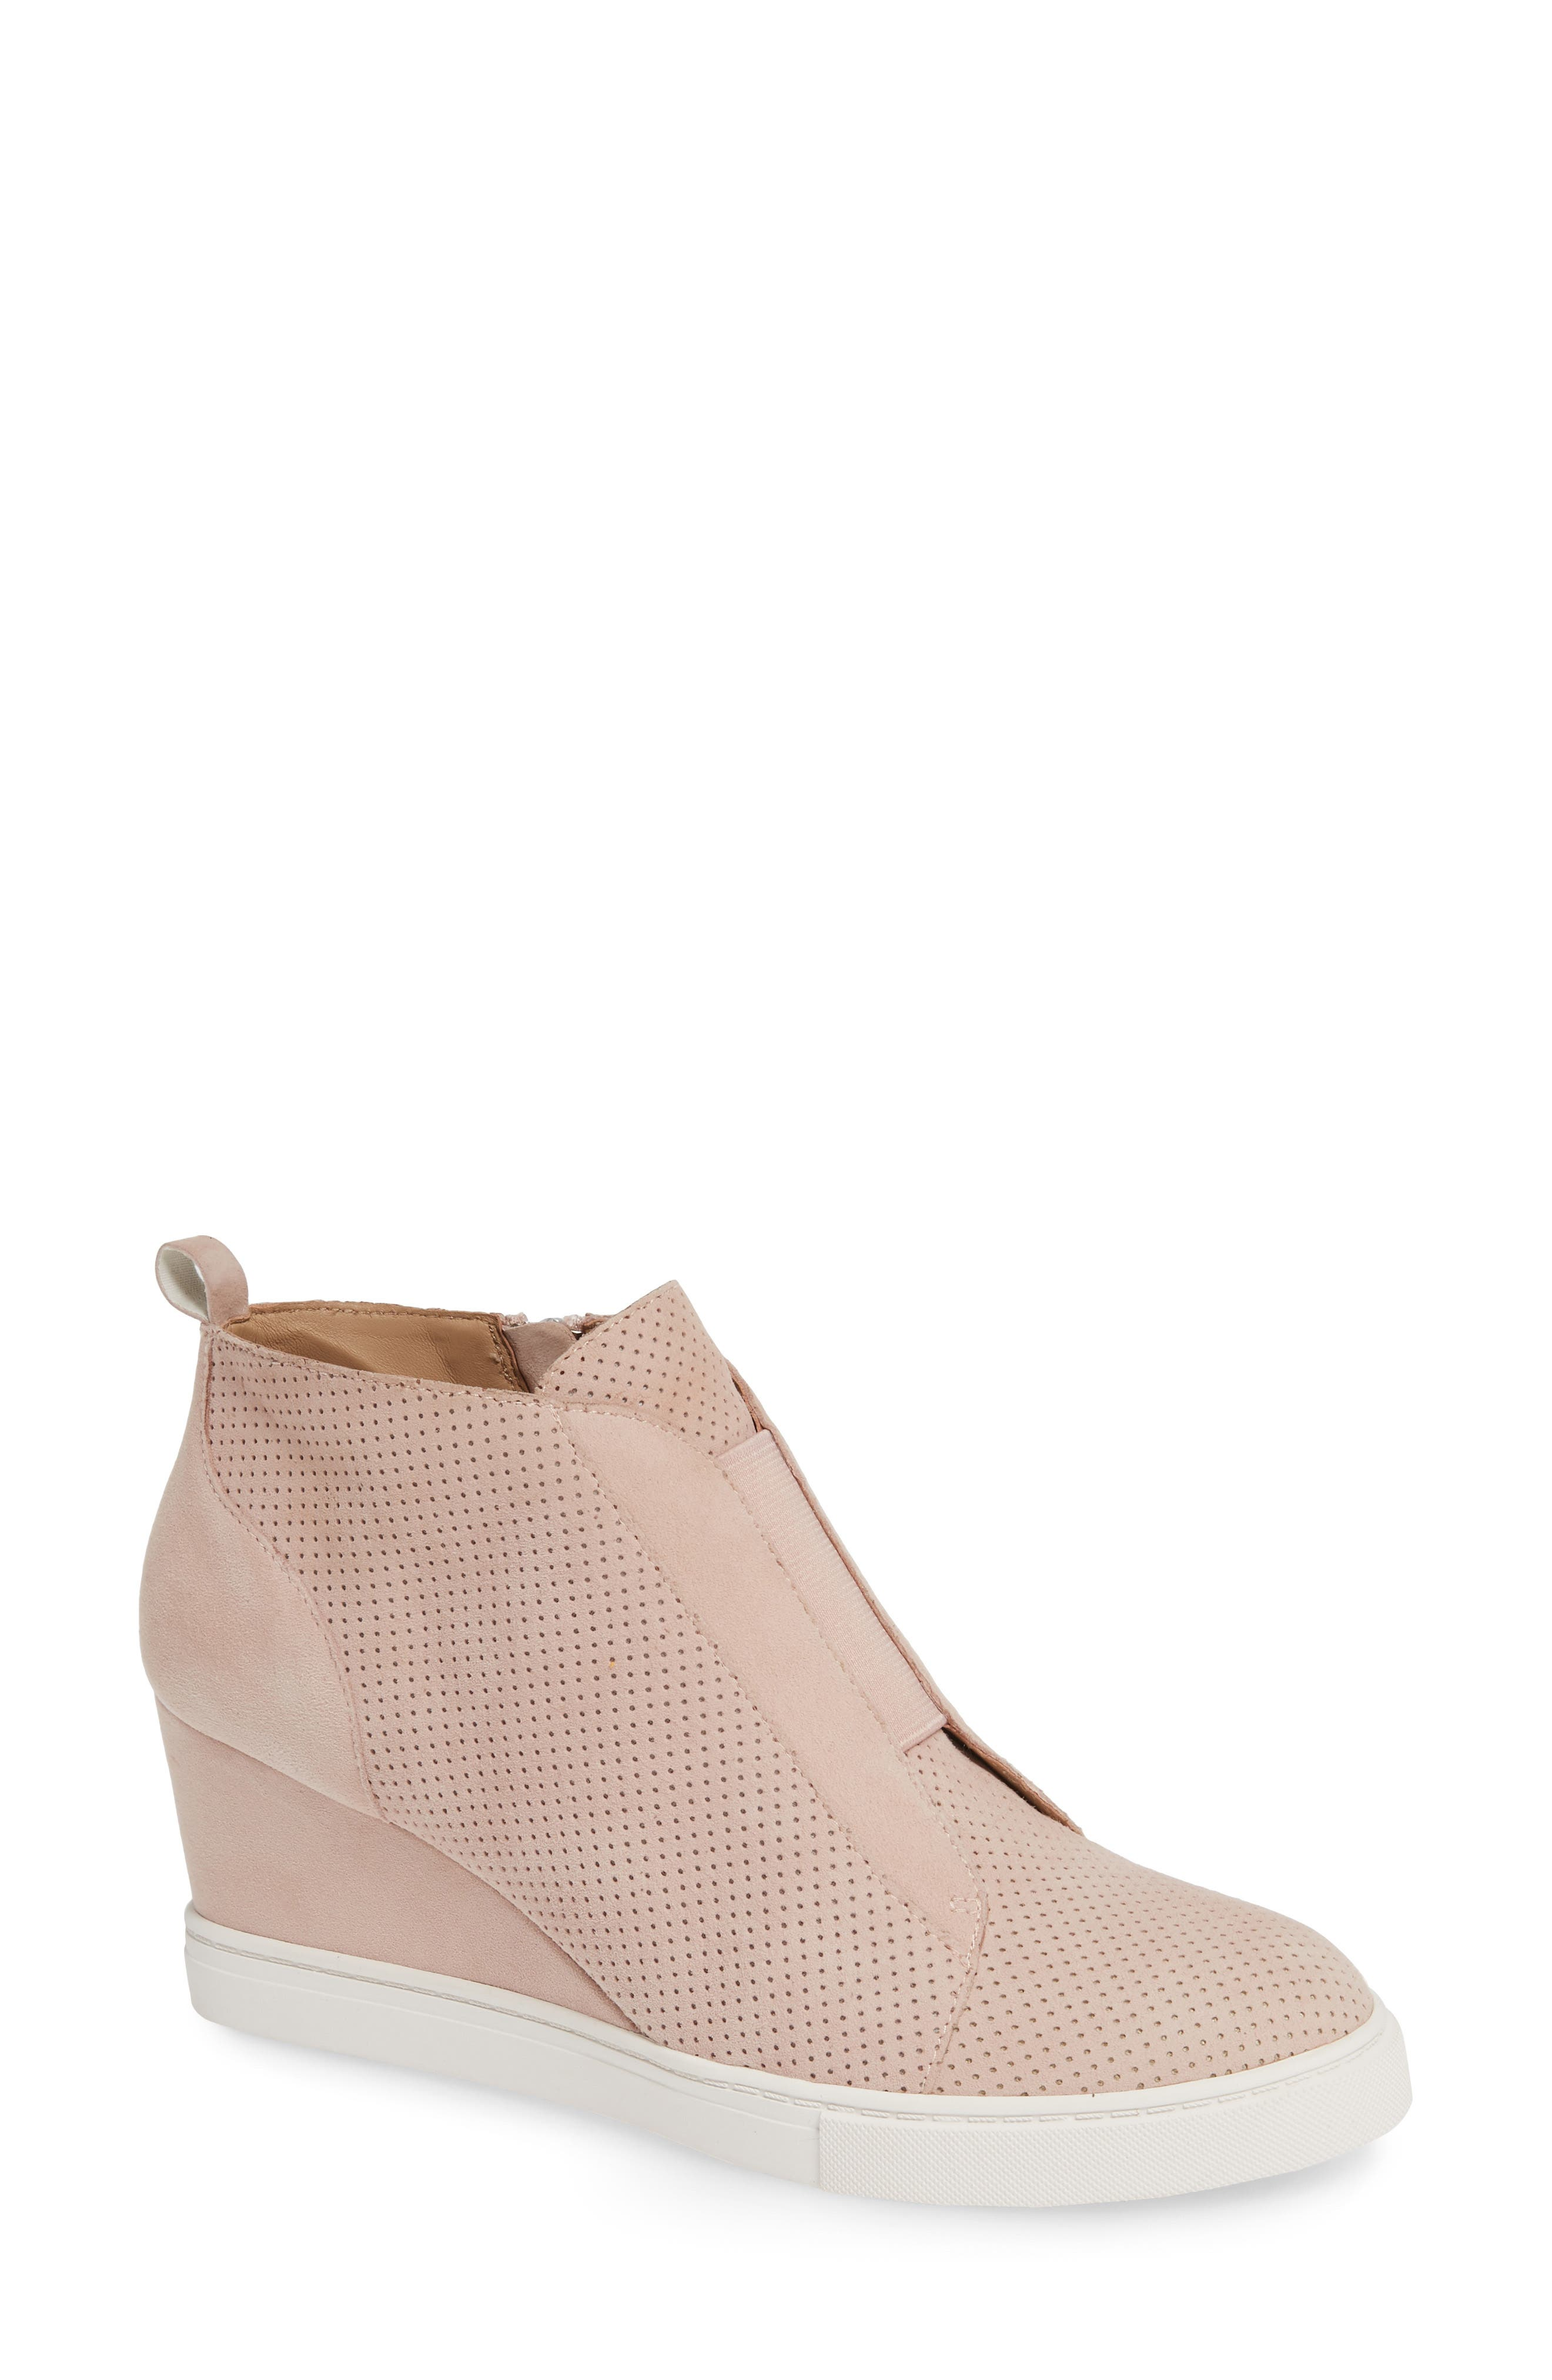 Felicia Wedge Bootie, Main, color, BLUSH PERFORATED SUEDE